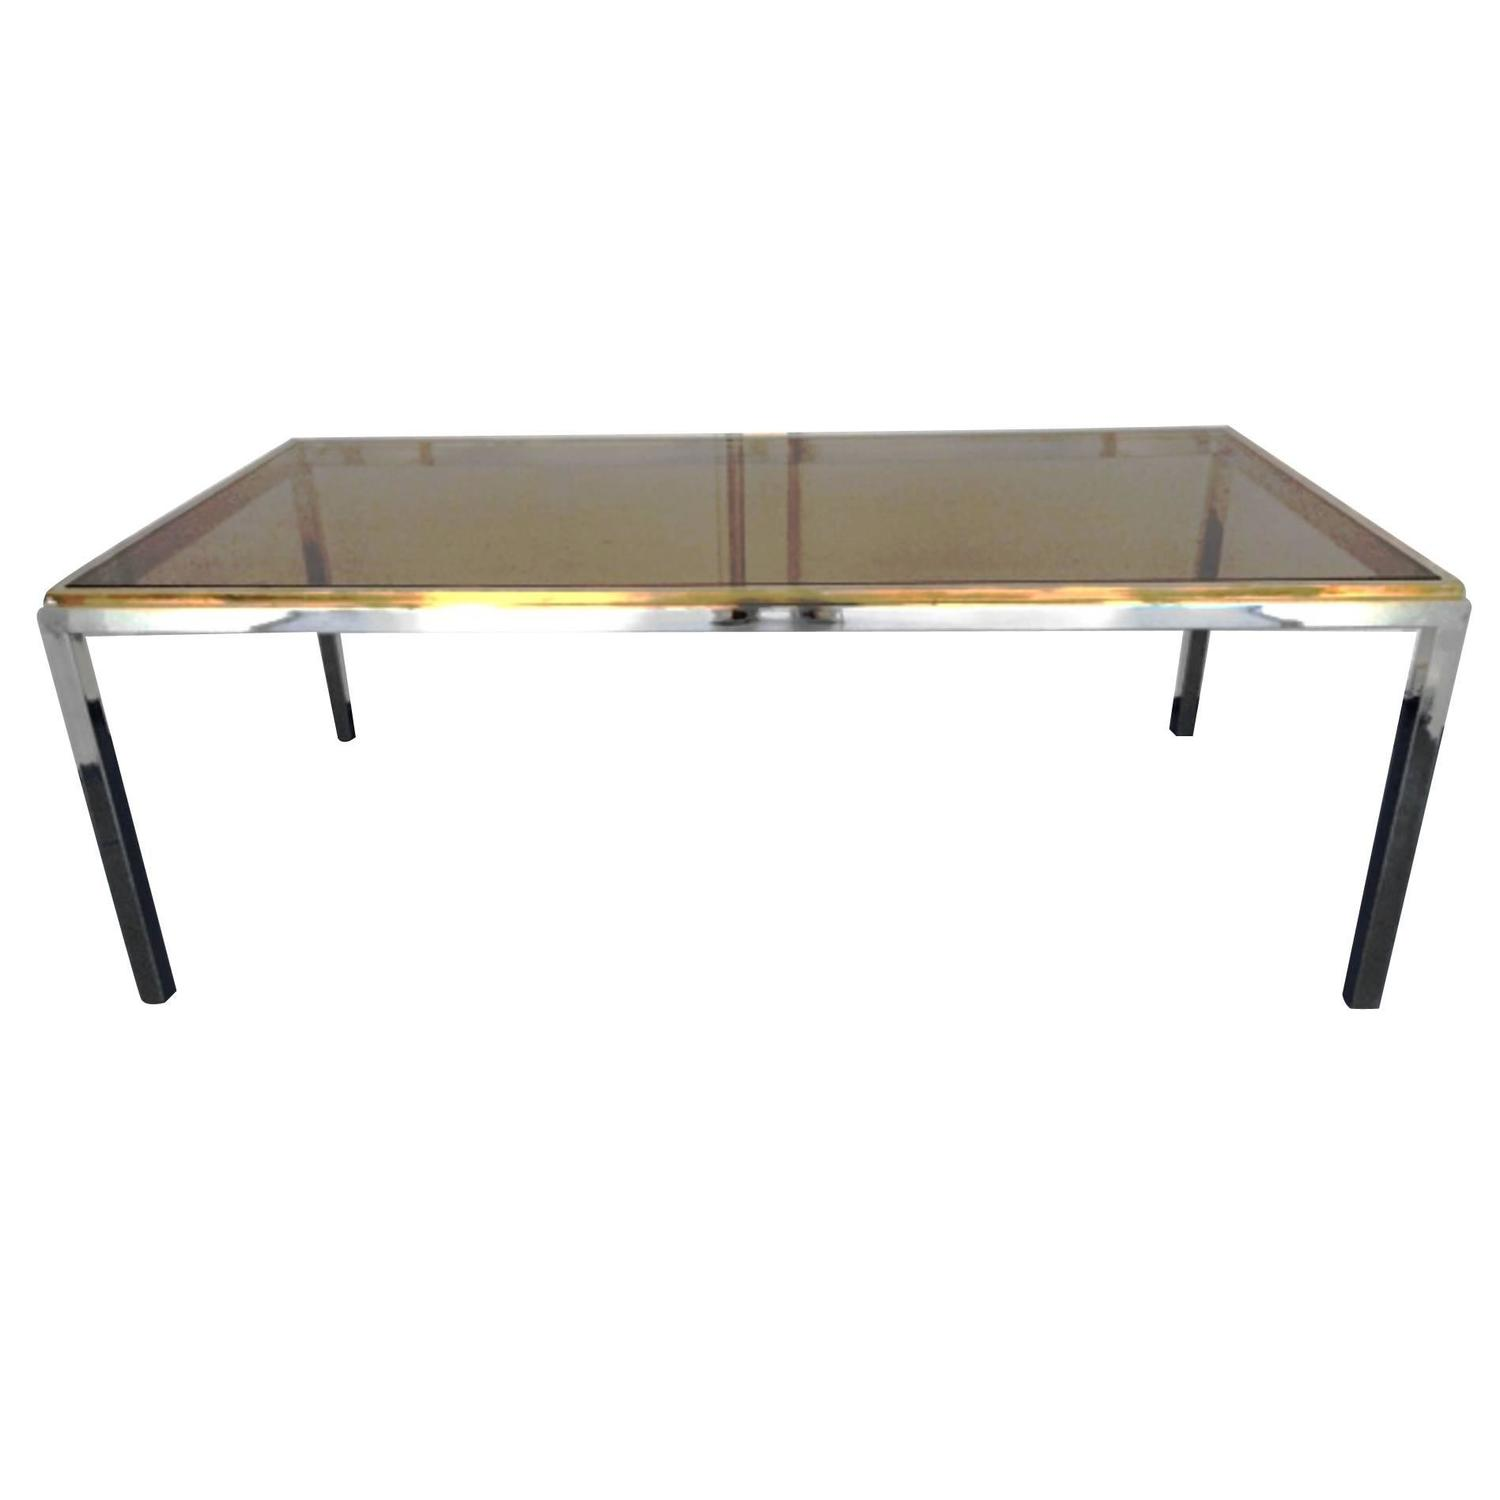 Nice dining room table in the style of willy rizzo 1970s for Nice table styles